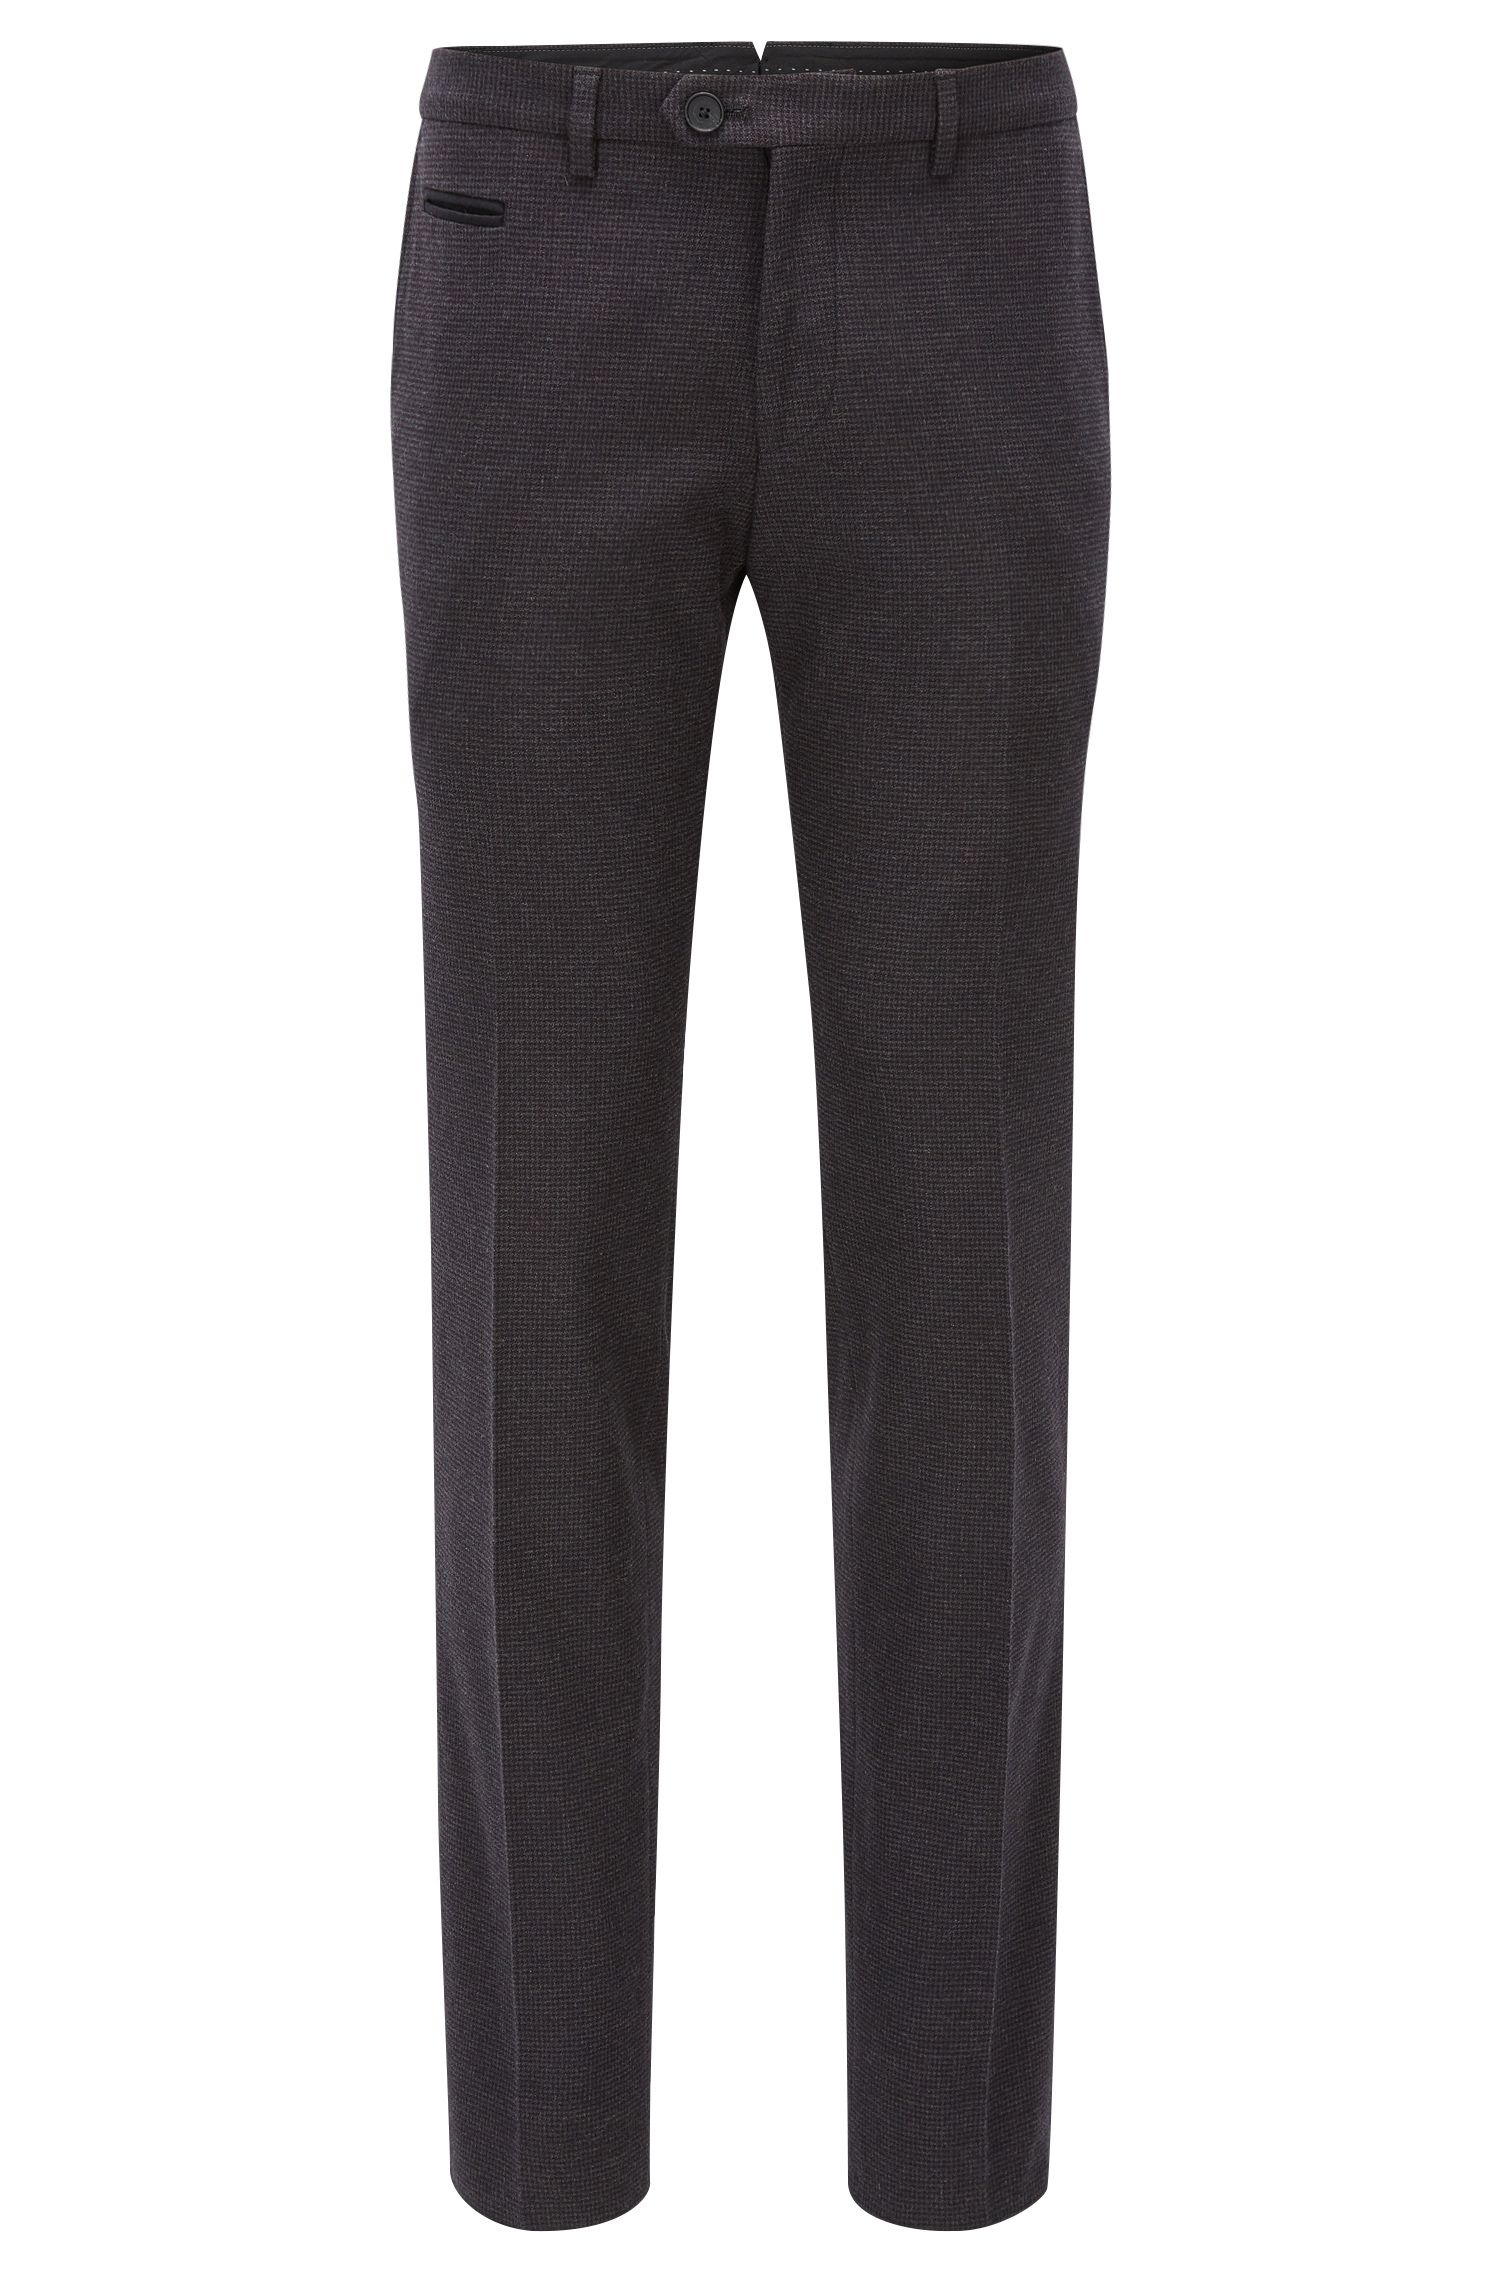 Extra-slim-fit houndstooth check trousers in stretch cotton